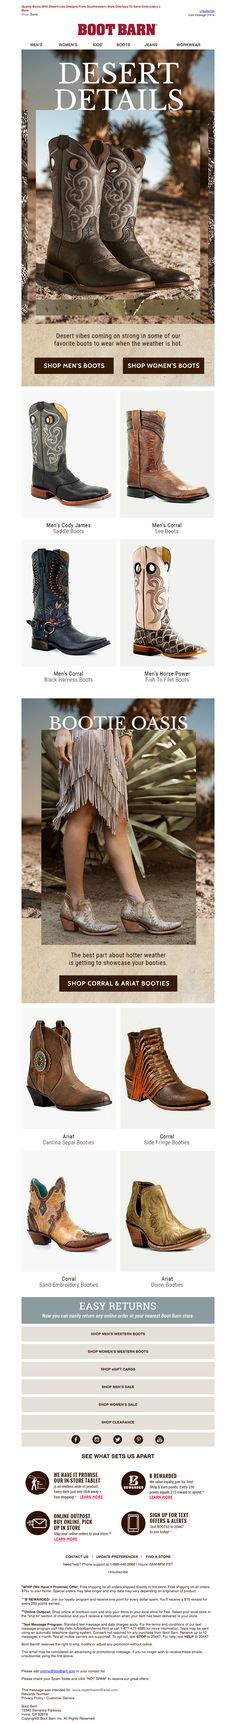 bootbarn5 Email Design Inspiration, Email Newsletters